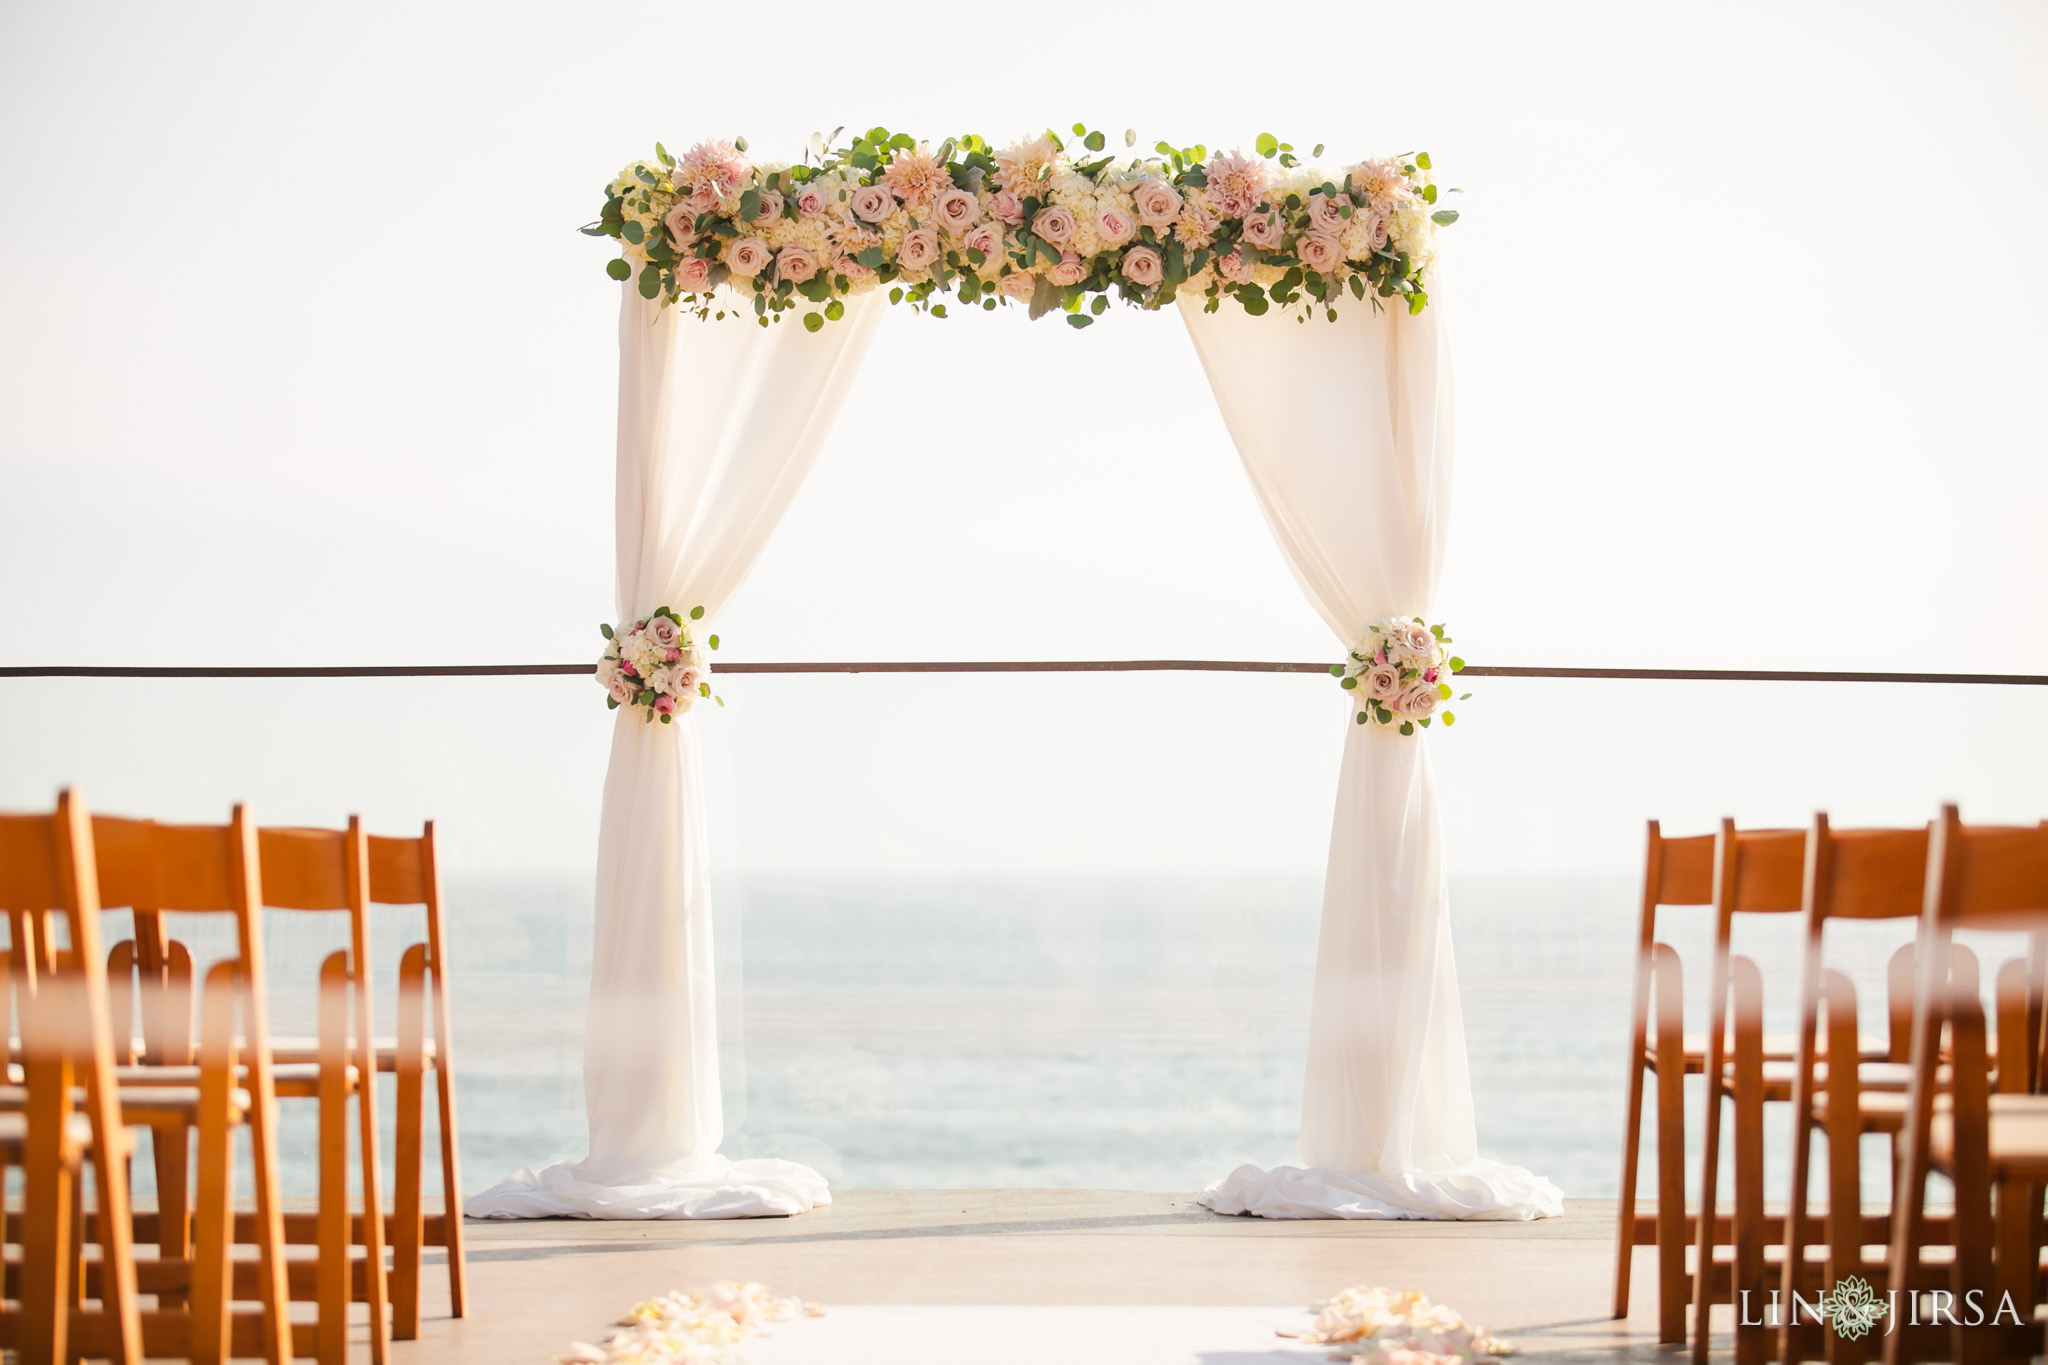 015 surf and sand resort laguna beach wedding photography